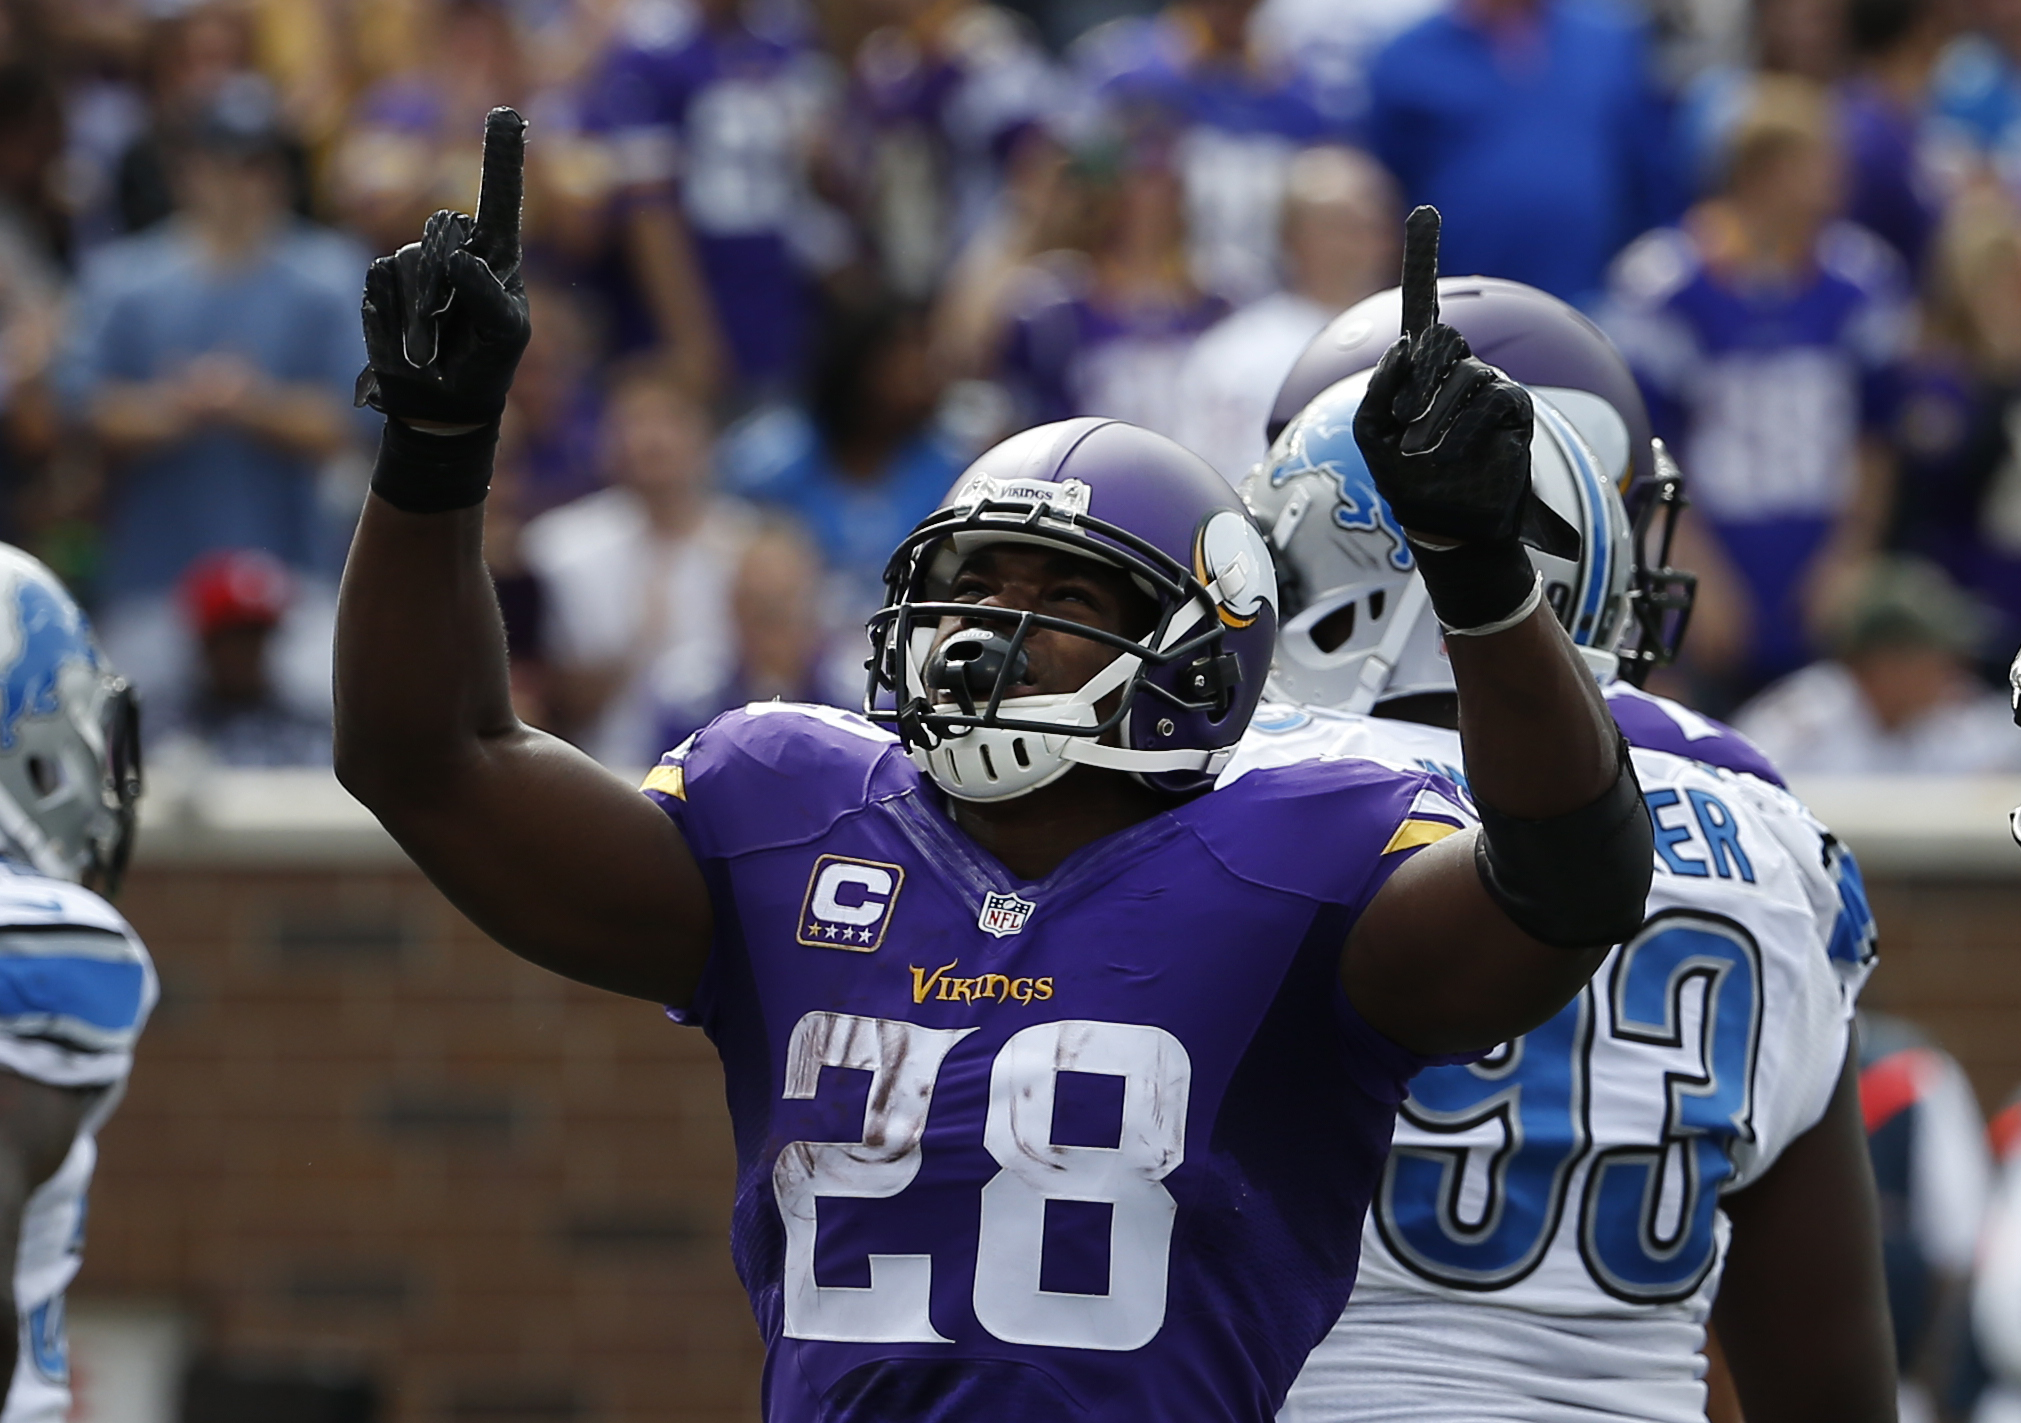 Minnesota Vikings running back Adrian Peterson (28) celebrates a touchdown, that was overturned after review, against the Detroit Lions in the first half of an NFL football game in Minneapolis, Sunday, Sept. 20, 2015. (AP Photo/Ann Heisenfelt)